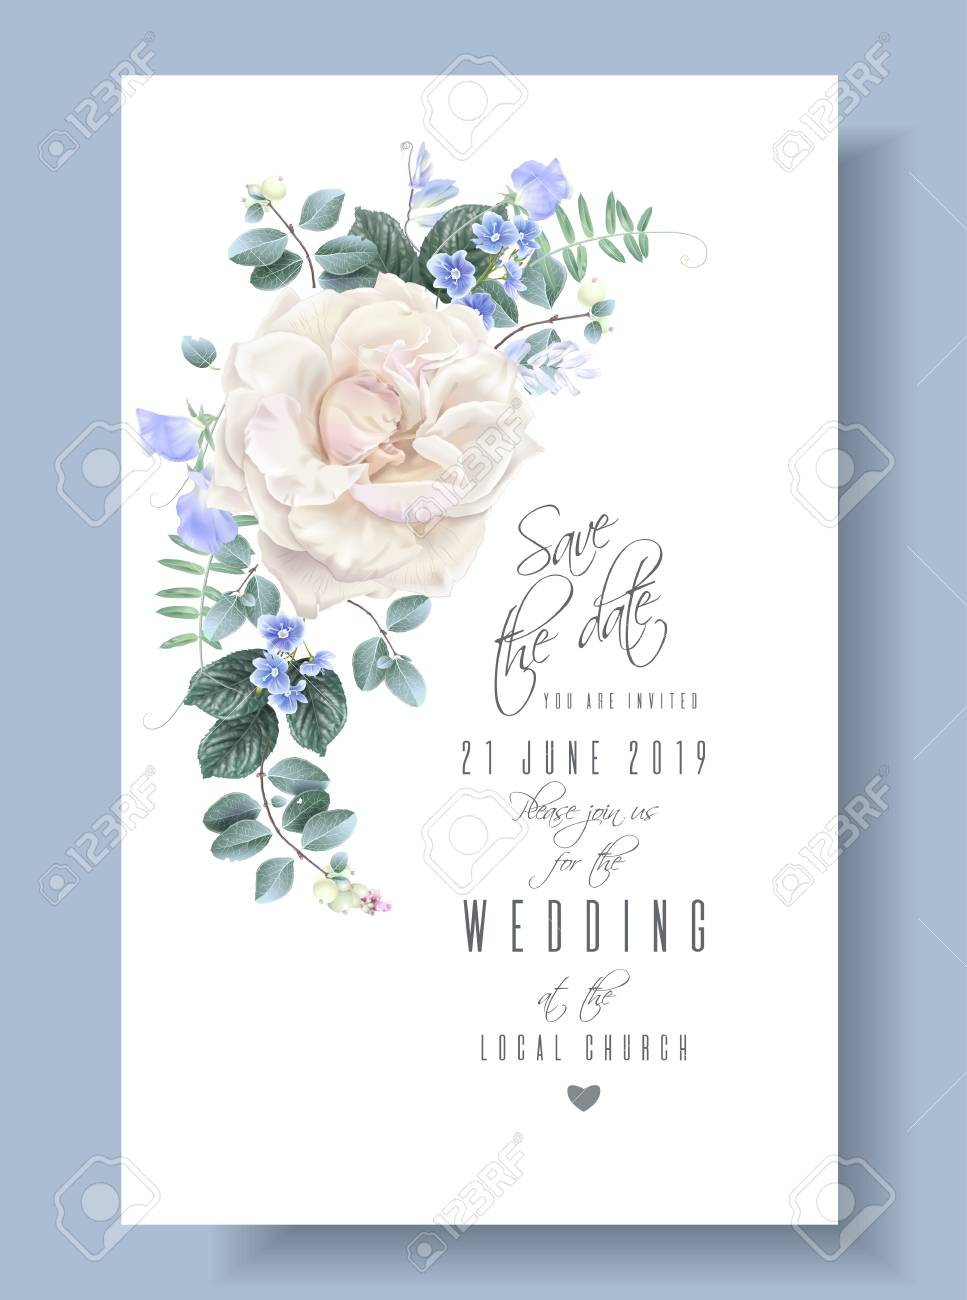 Vector Vintage Wedding Invitation Card With White Garden Rose